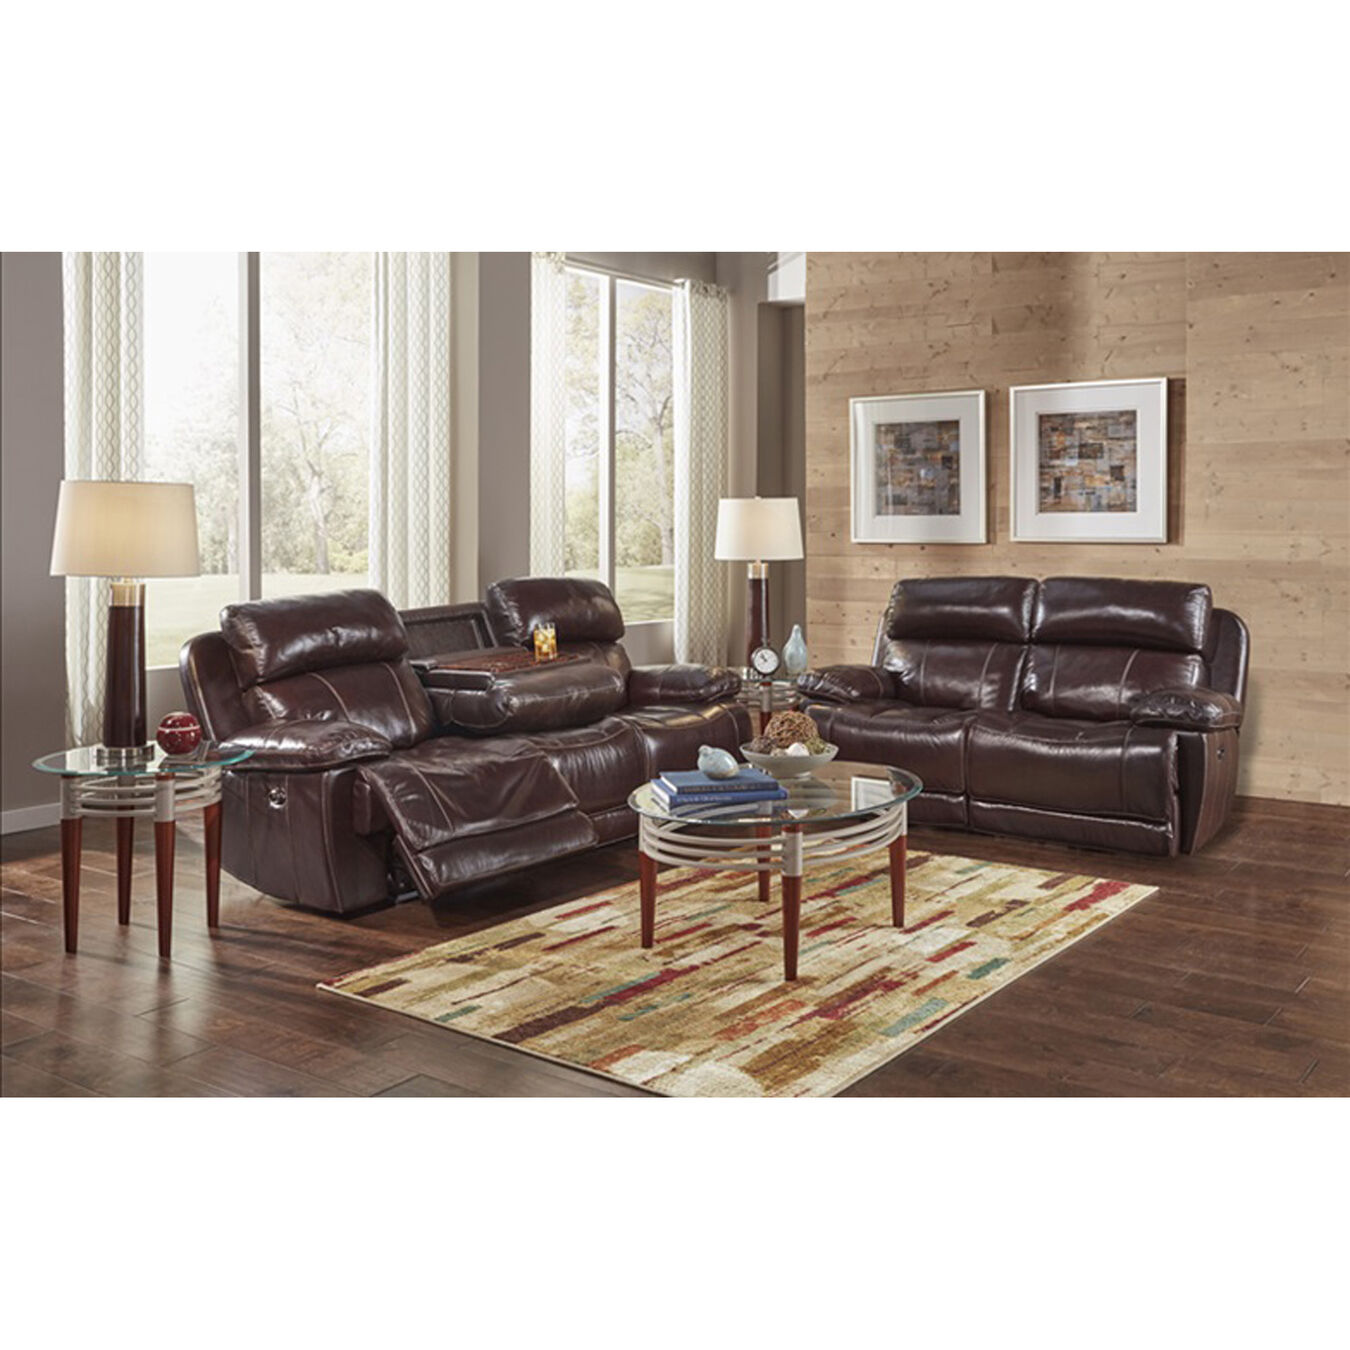 Happy leather sofa loveseat sets 2 piece james reclining living room collection